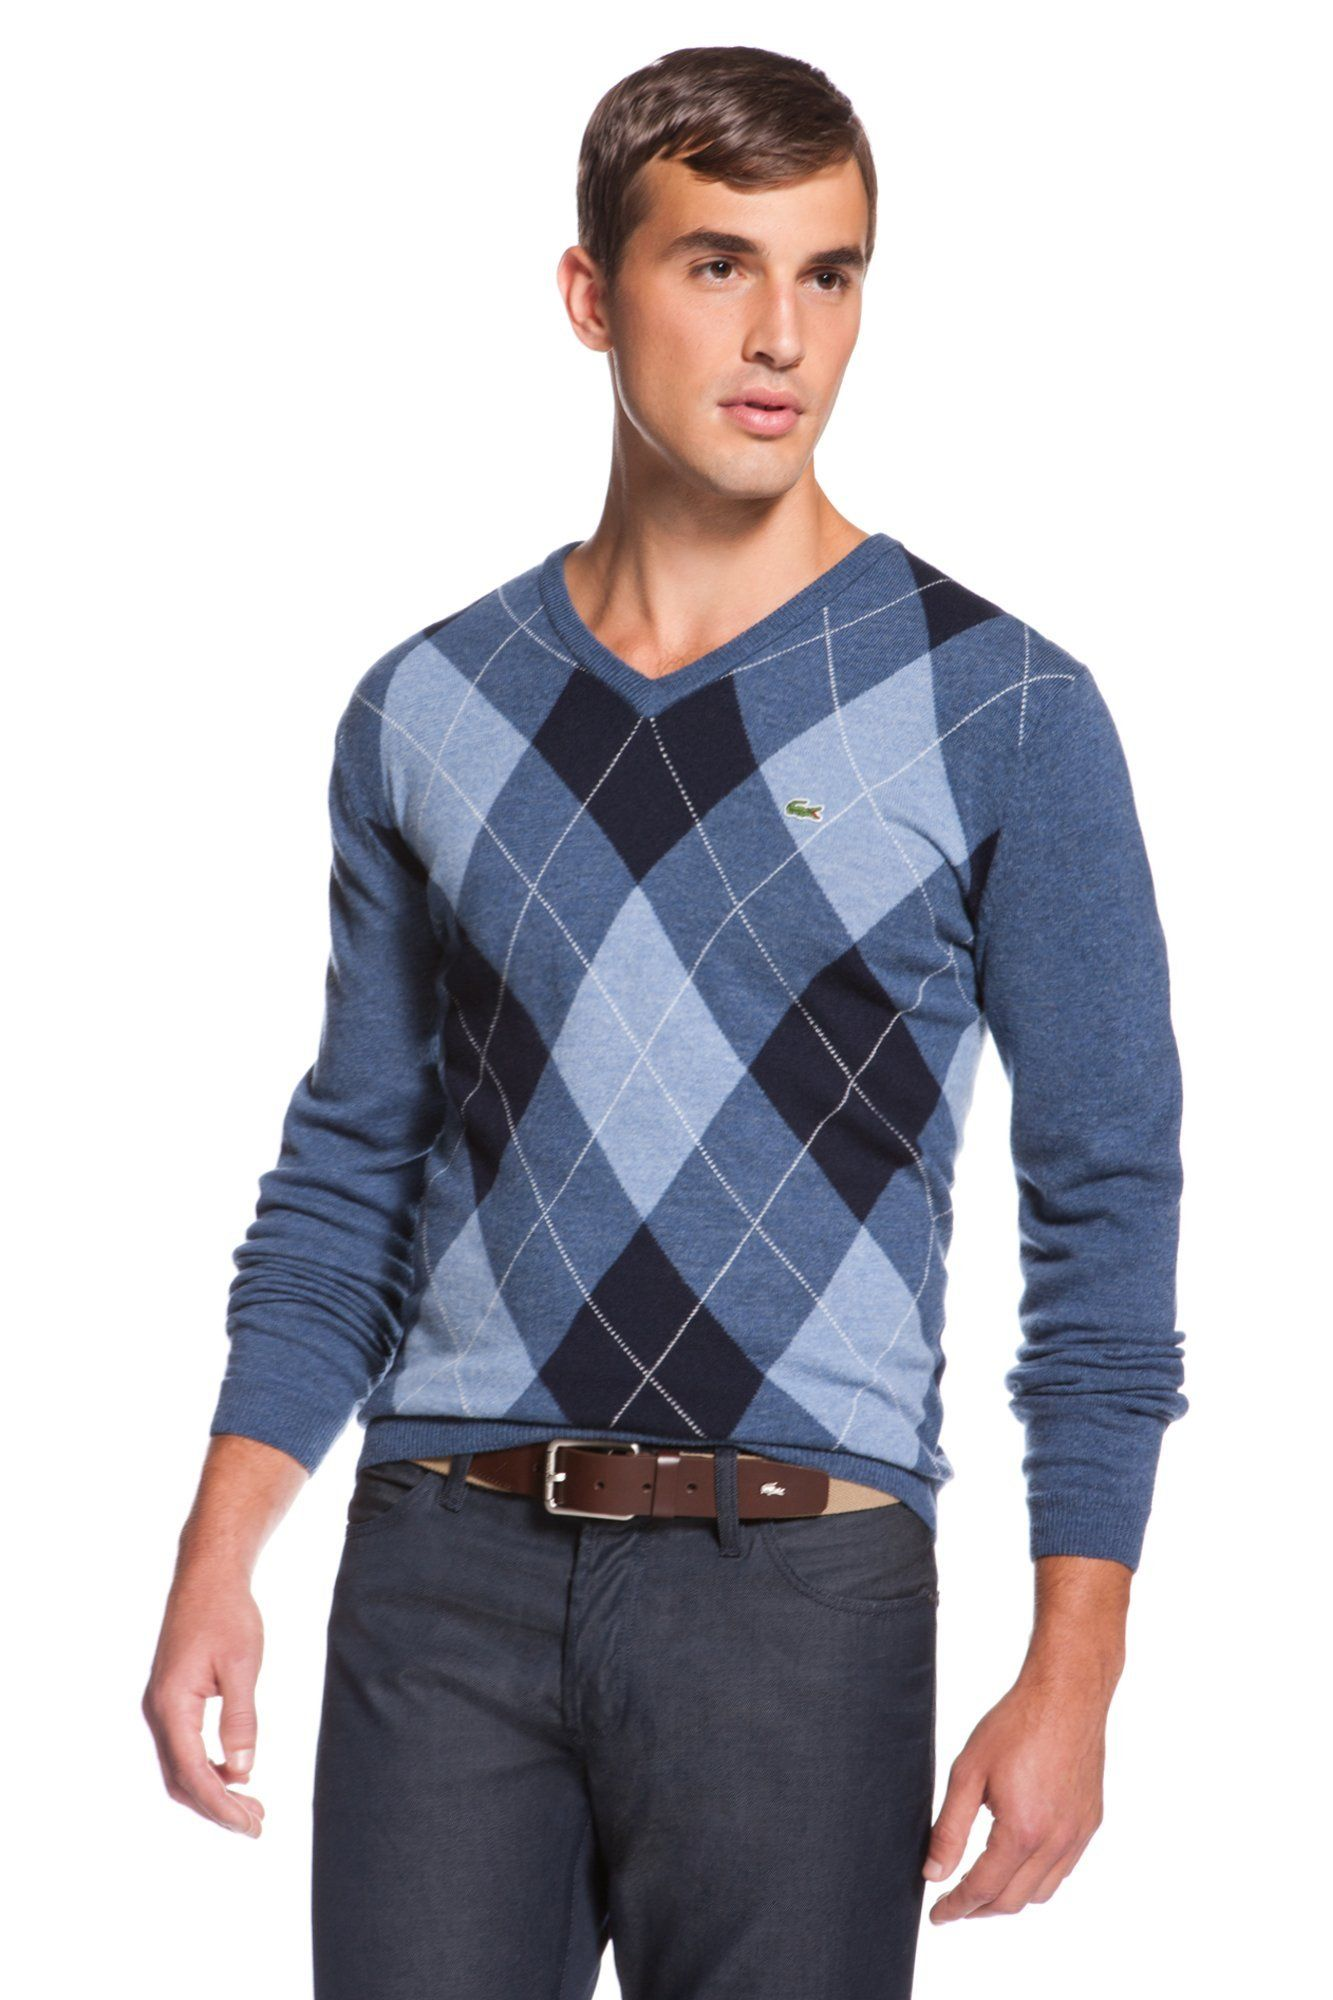 5b6d9d04b18 Lacoste Wool Argyle V-neck Sweater   Sweaters